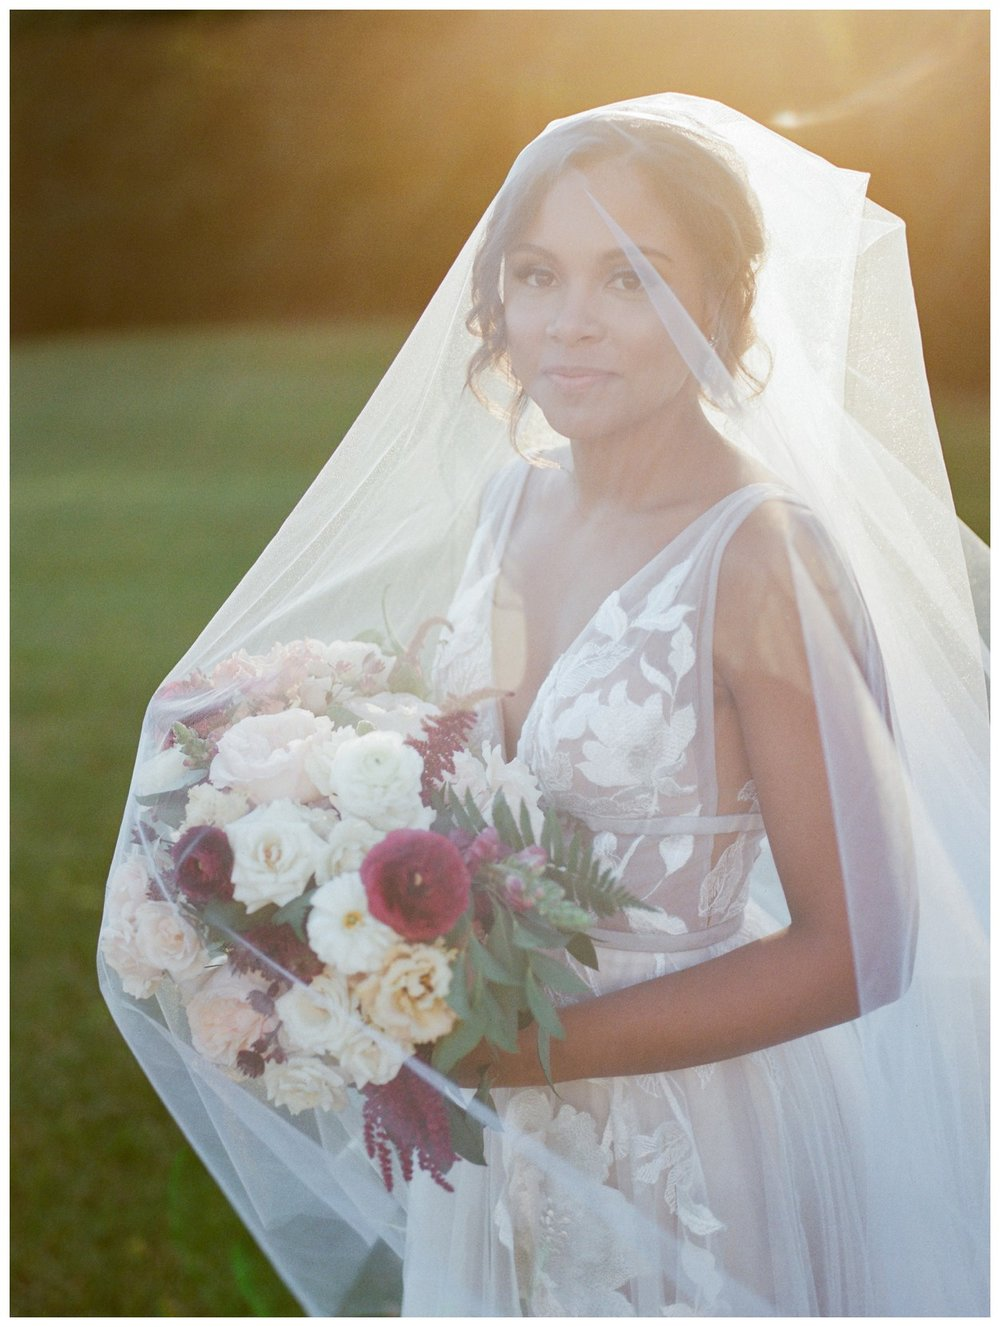 Sun drenched fall wedding in shades of pink at Oxon Hill Manor in Maryland sunset bridal portrait by Washington DC fine art photographer Lissa Ryan Photography